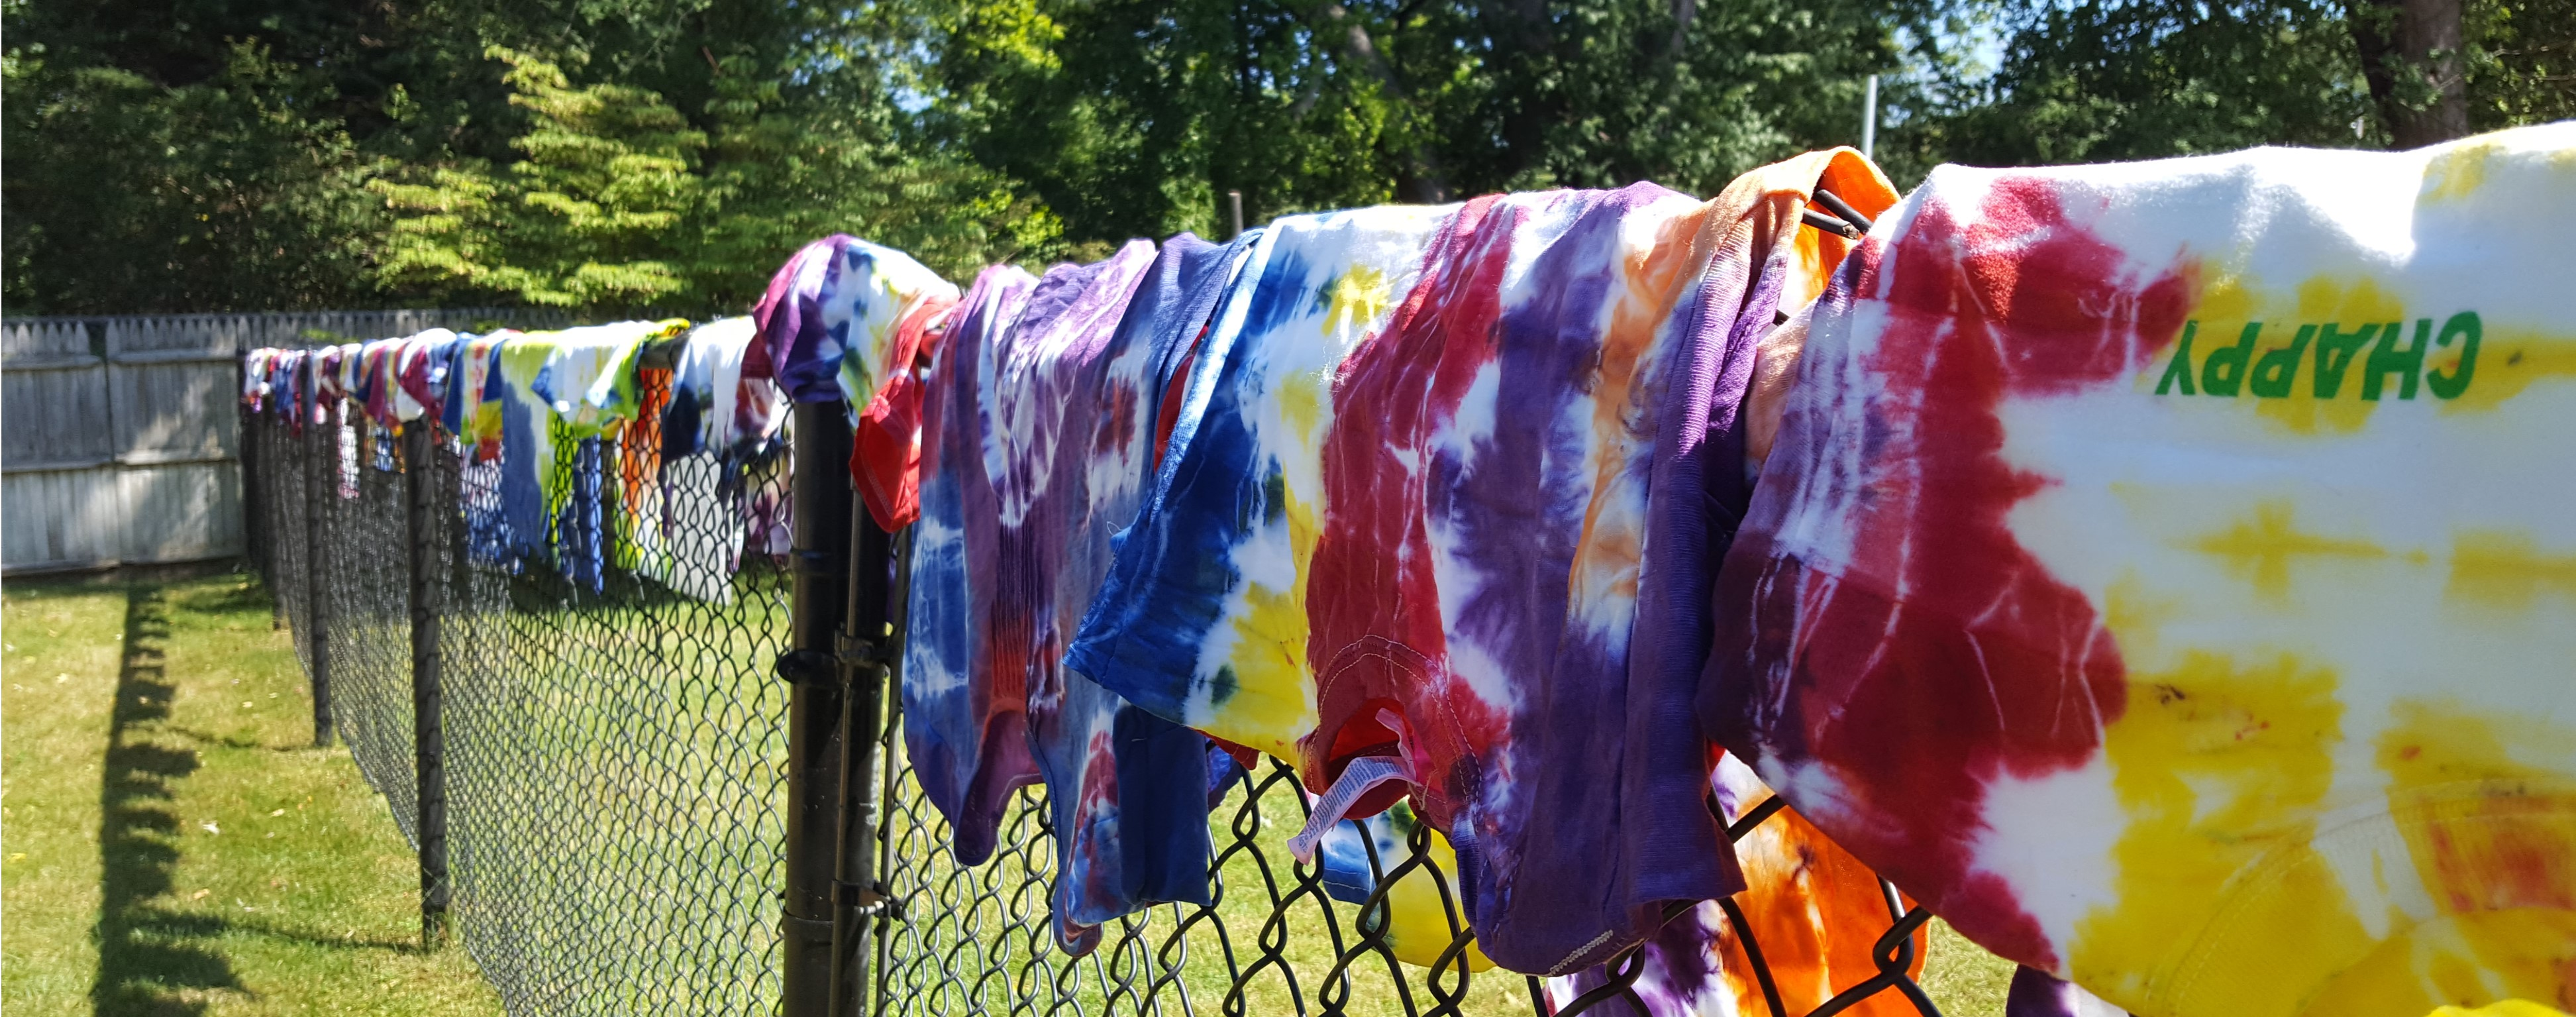 tie dye day 1535 by 3889